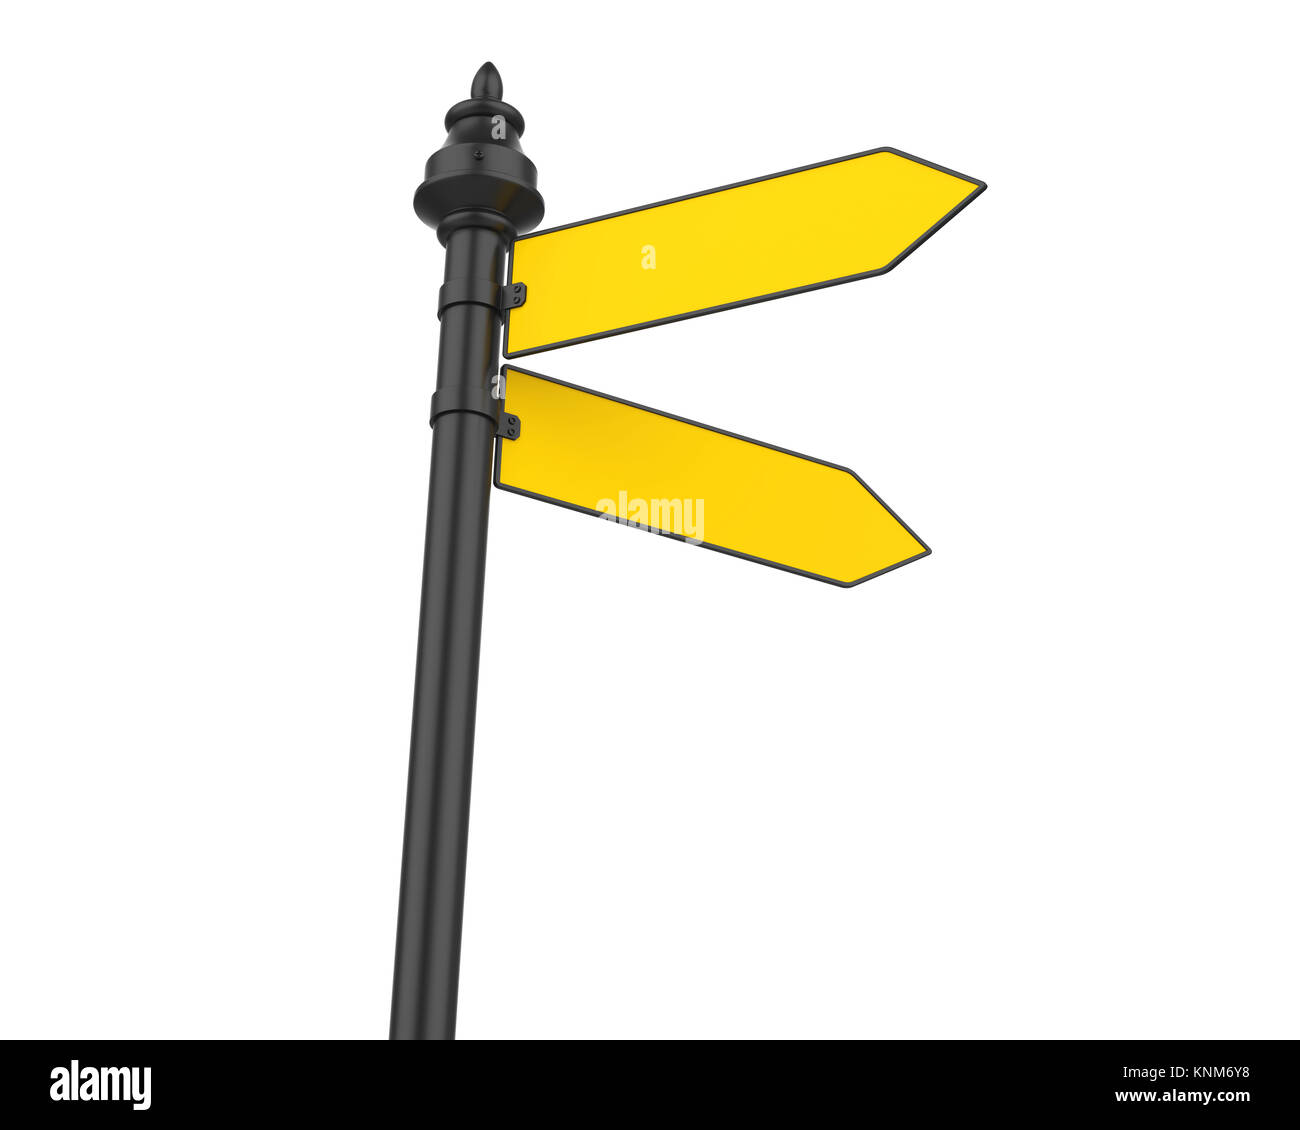 Blank Street Sign Isolated - Stock Image